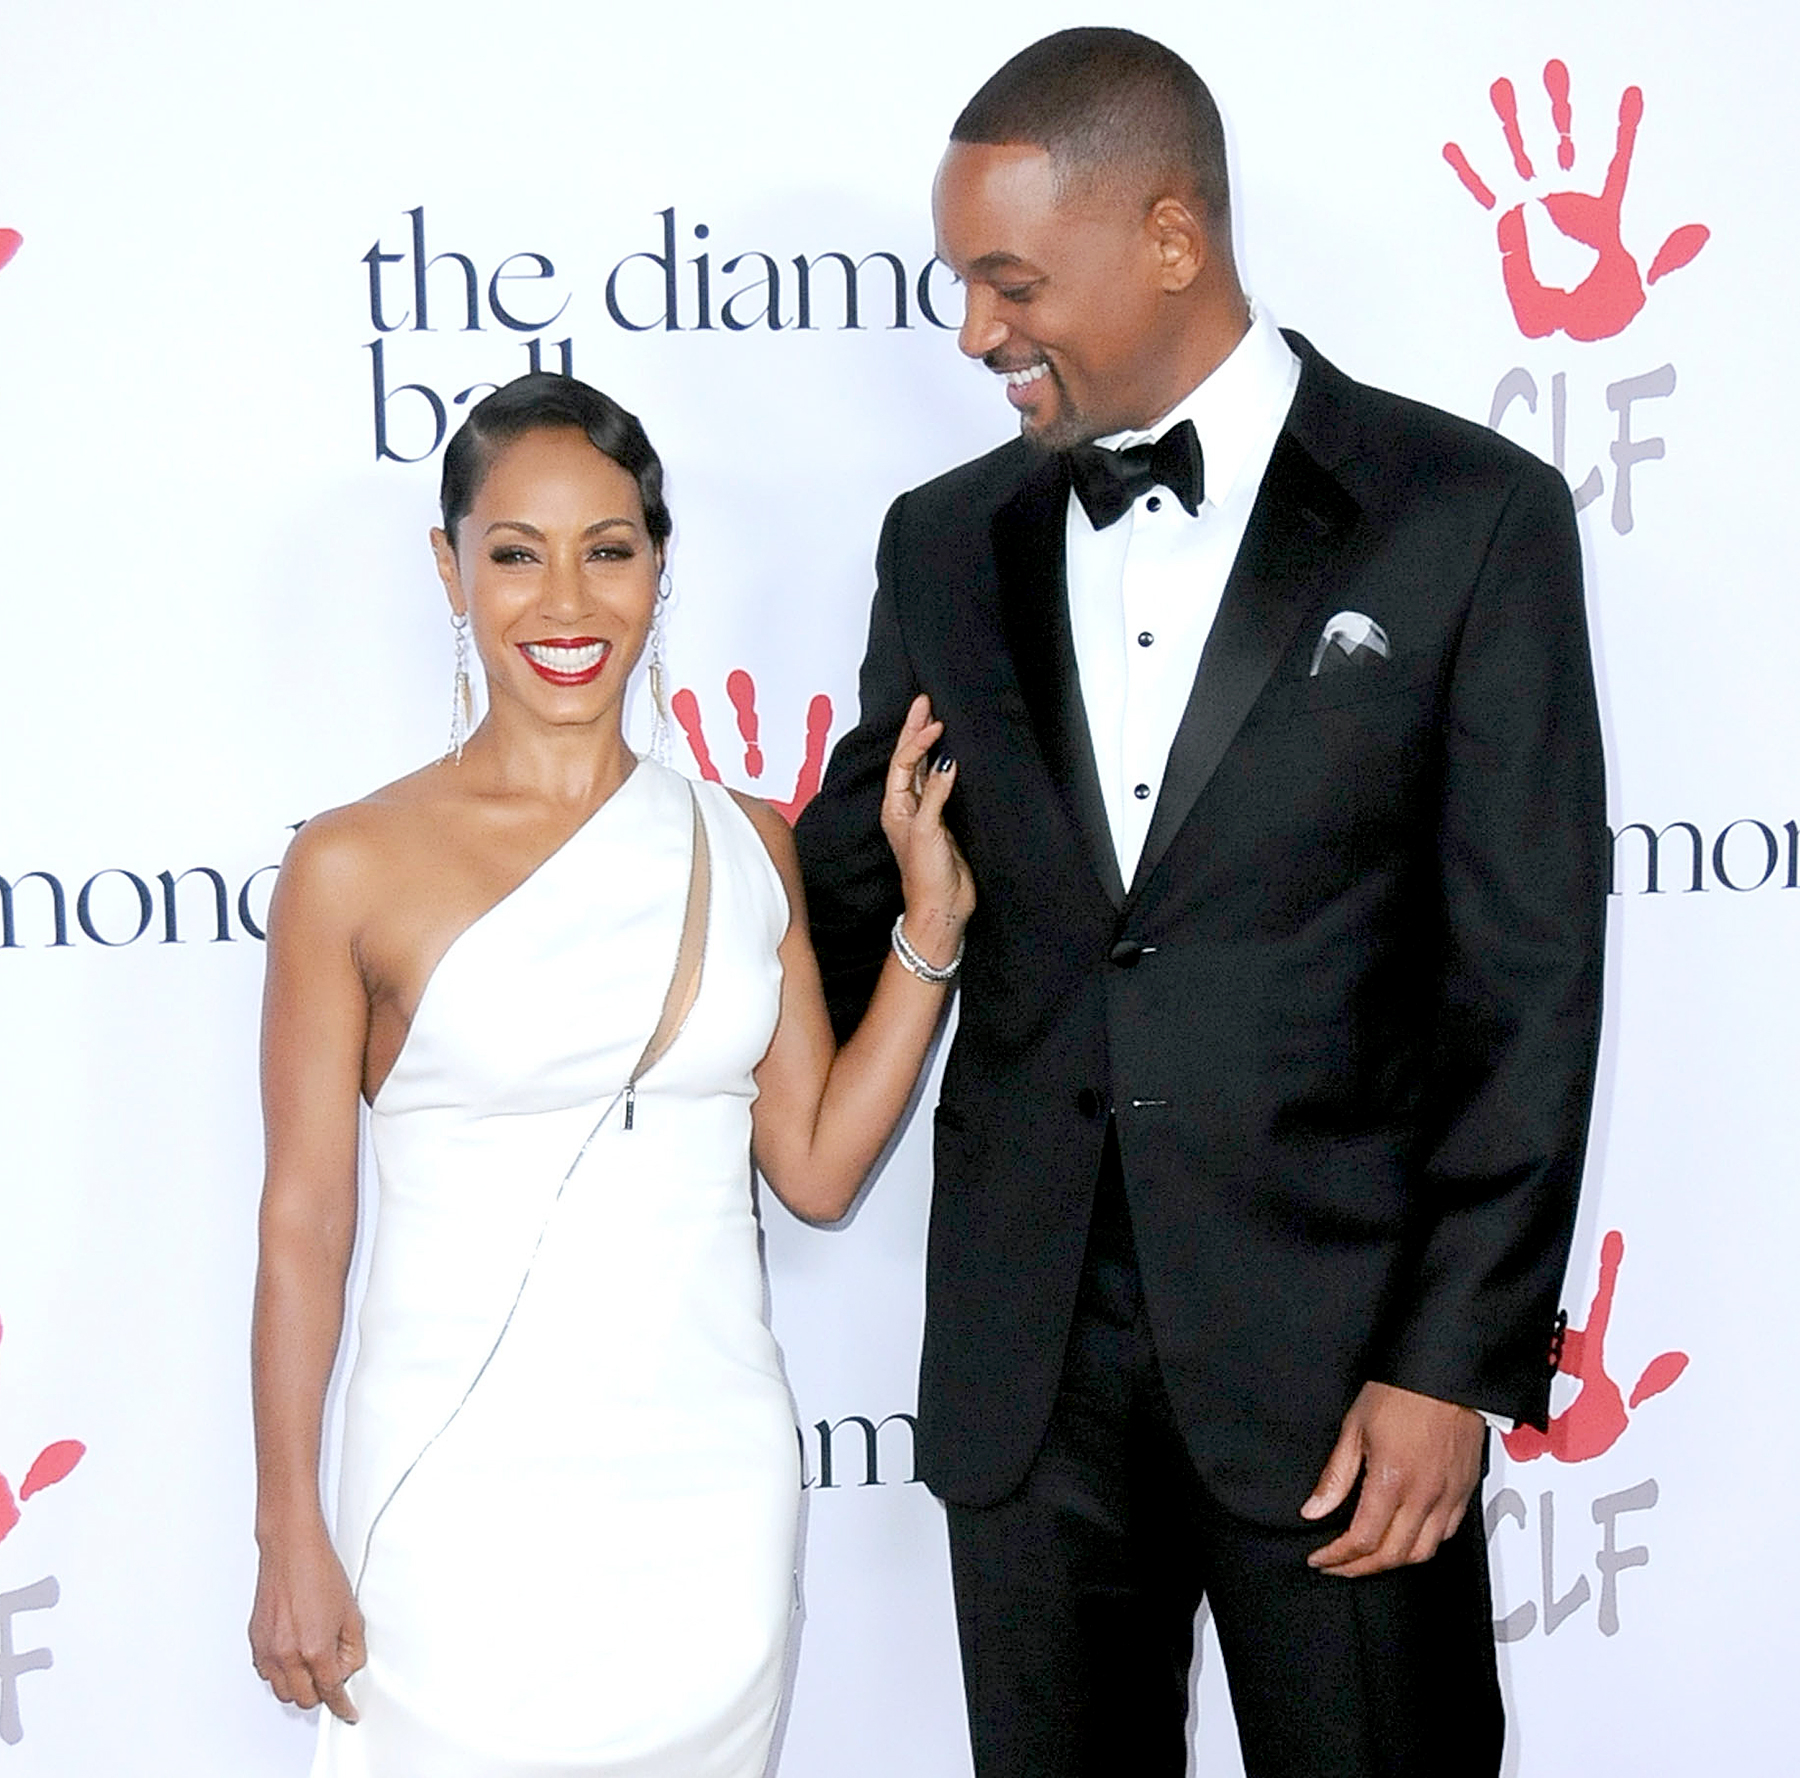 Jada Pinkett Smith and Will Smith attend the 2nd Annual Diamond Ball.